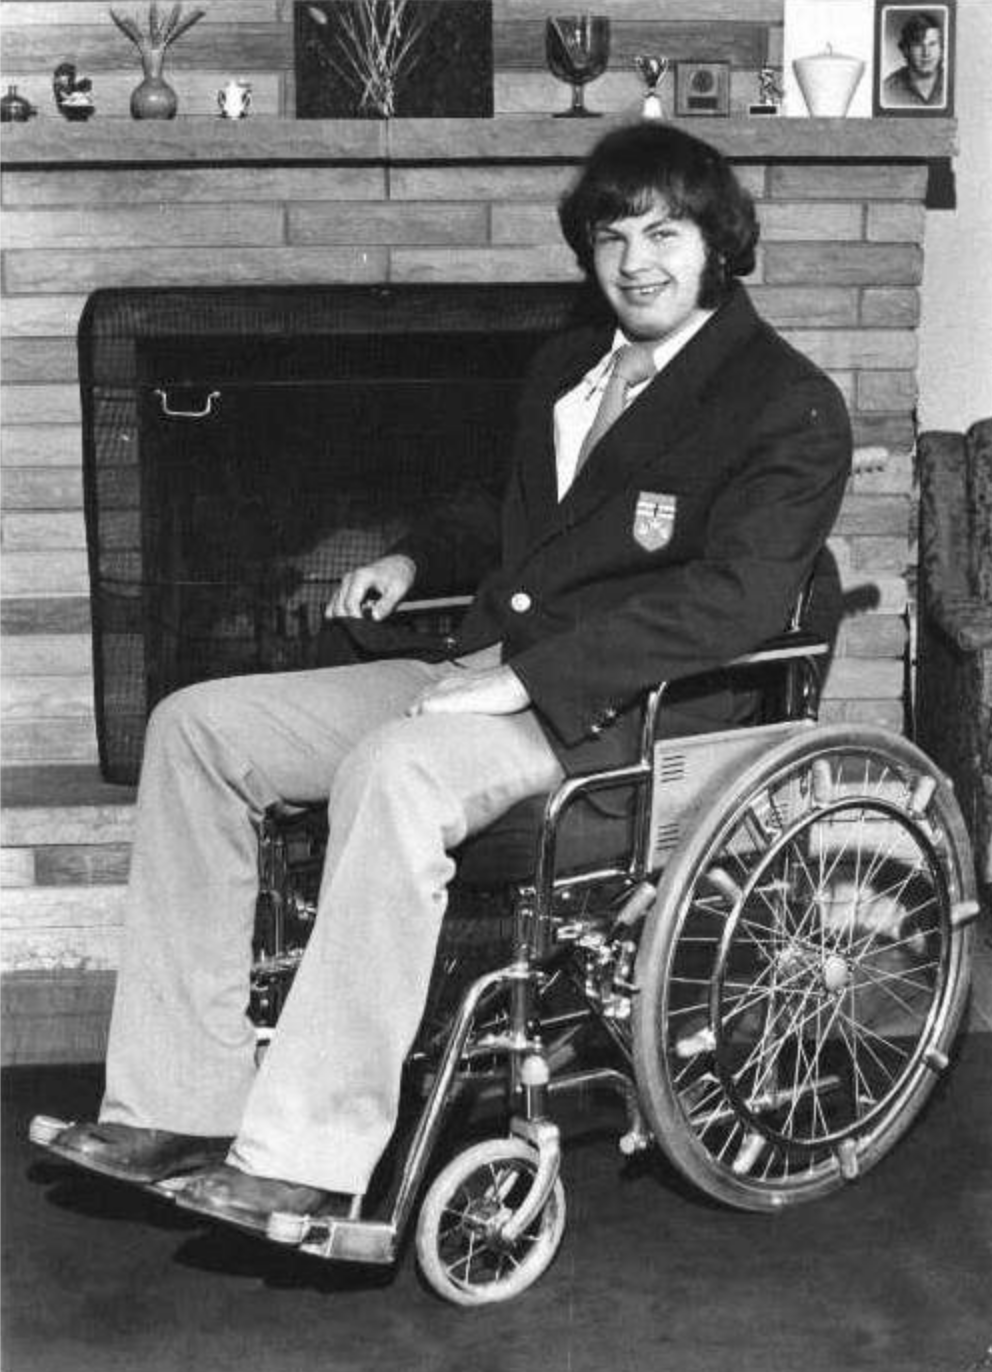 Paul, 1974, one year after the diving accident